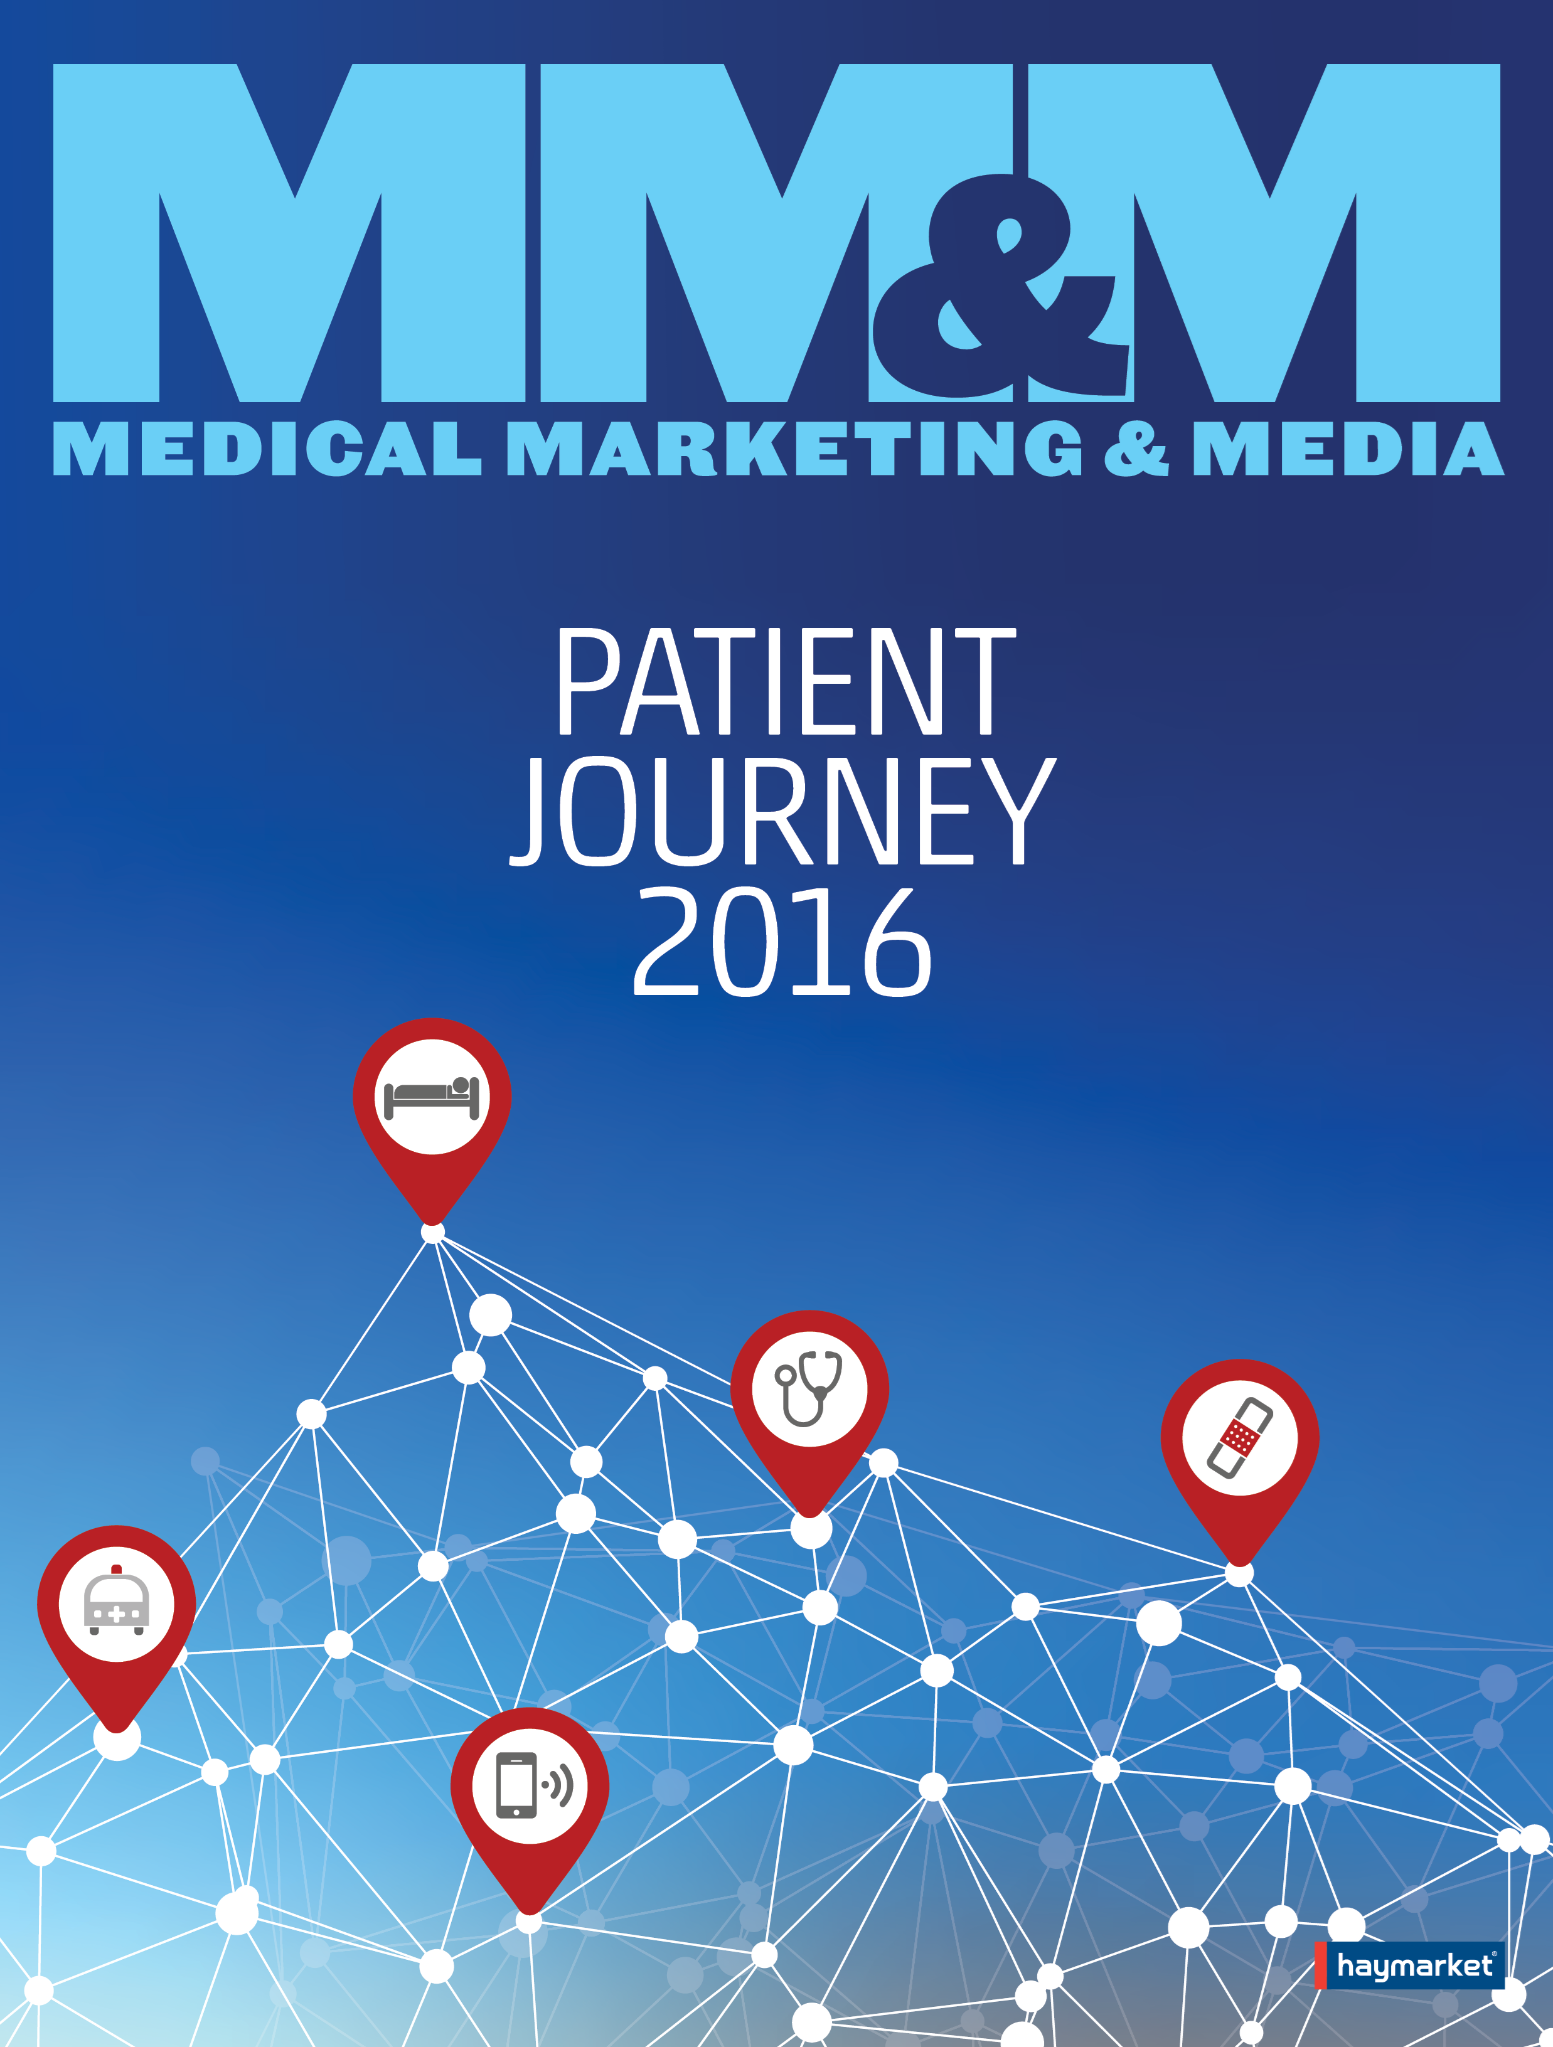 Read the complete Patient Journey 2016 Digital Edition